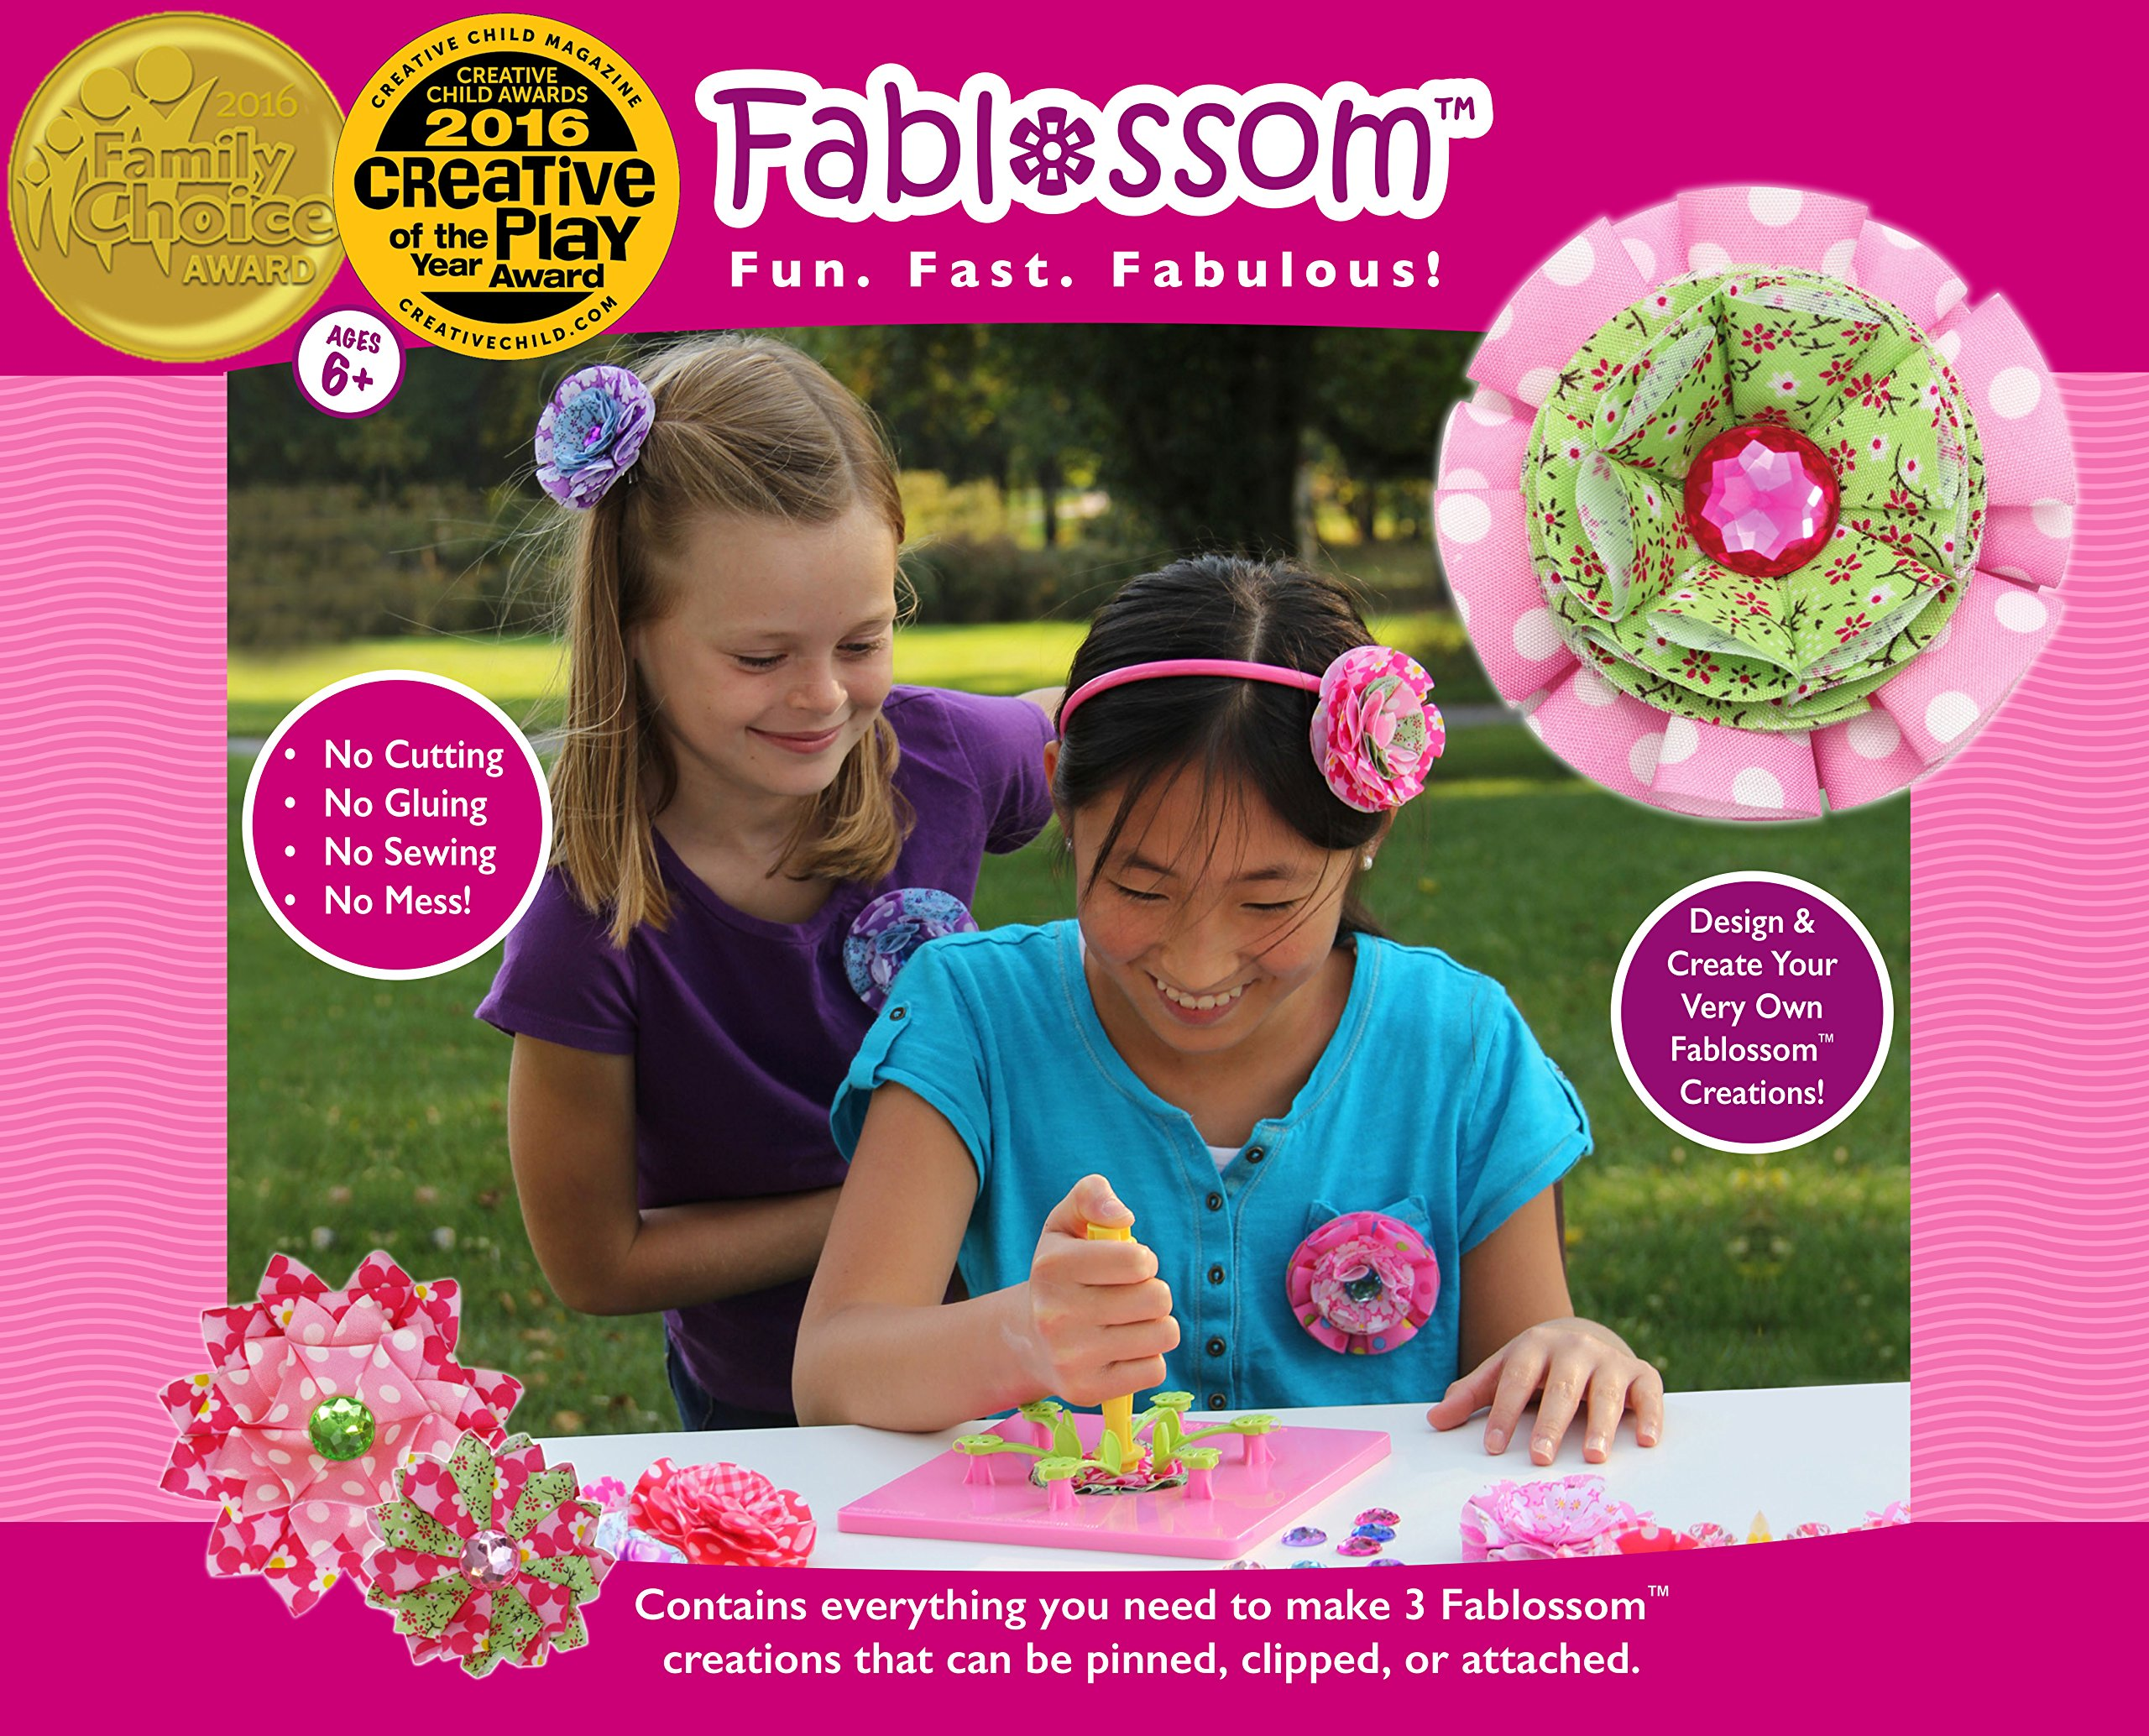 Fablossom Fabric Starter Kit: DIY Kit to Design & Create Fabric Flowers for Headbands - Best Craft for Girls